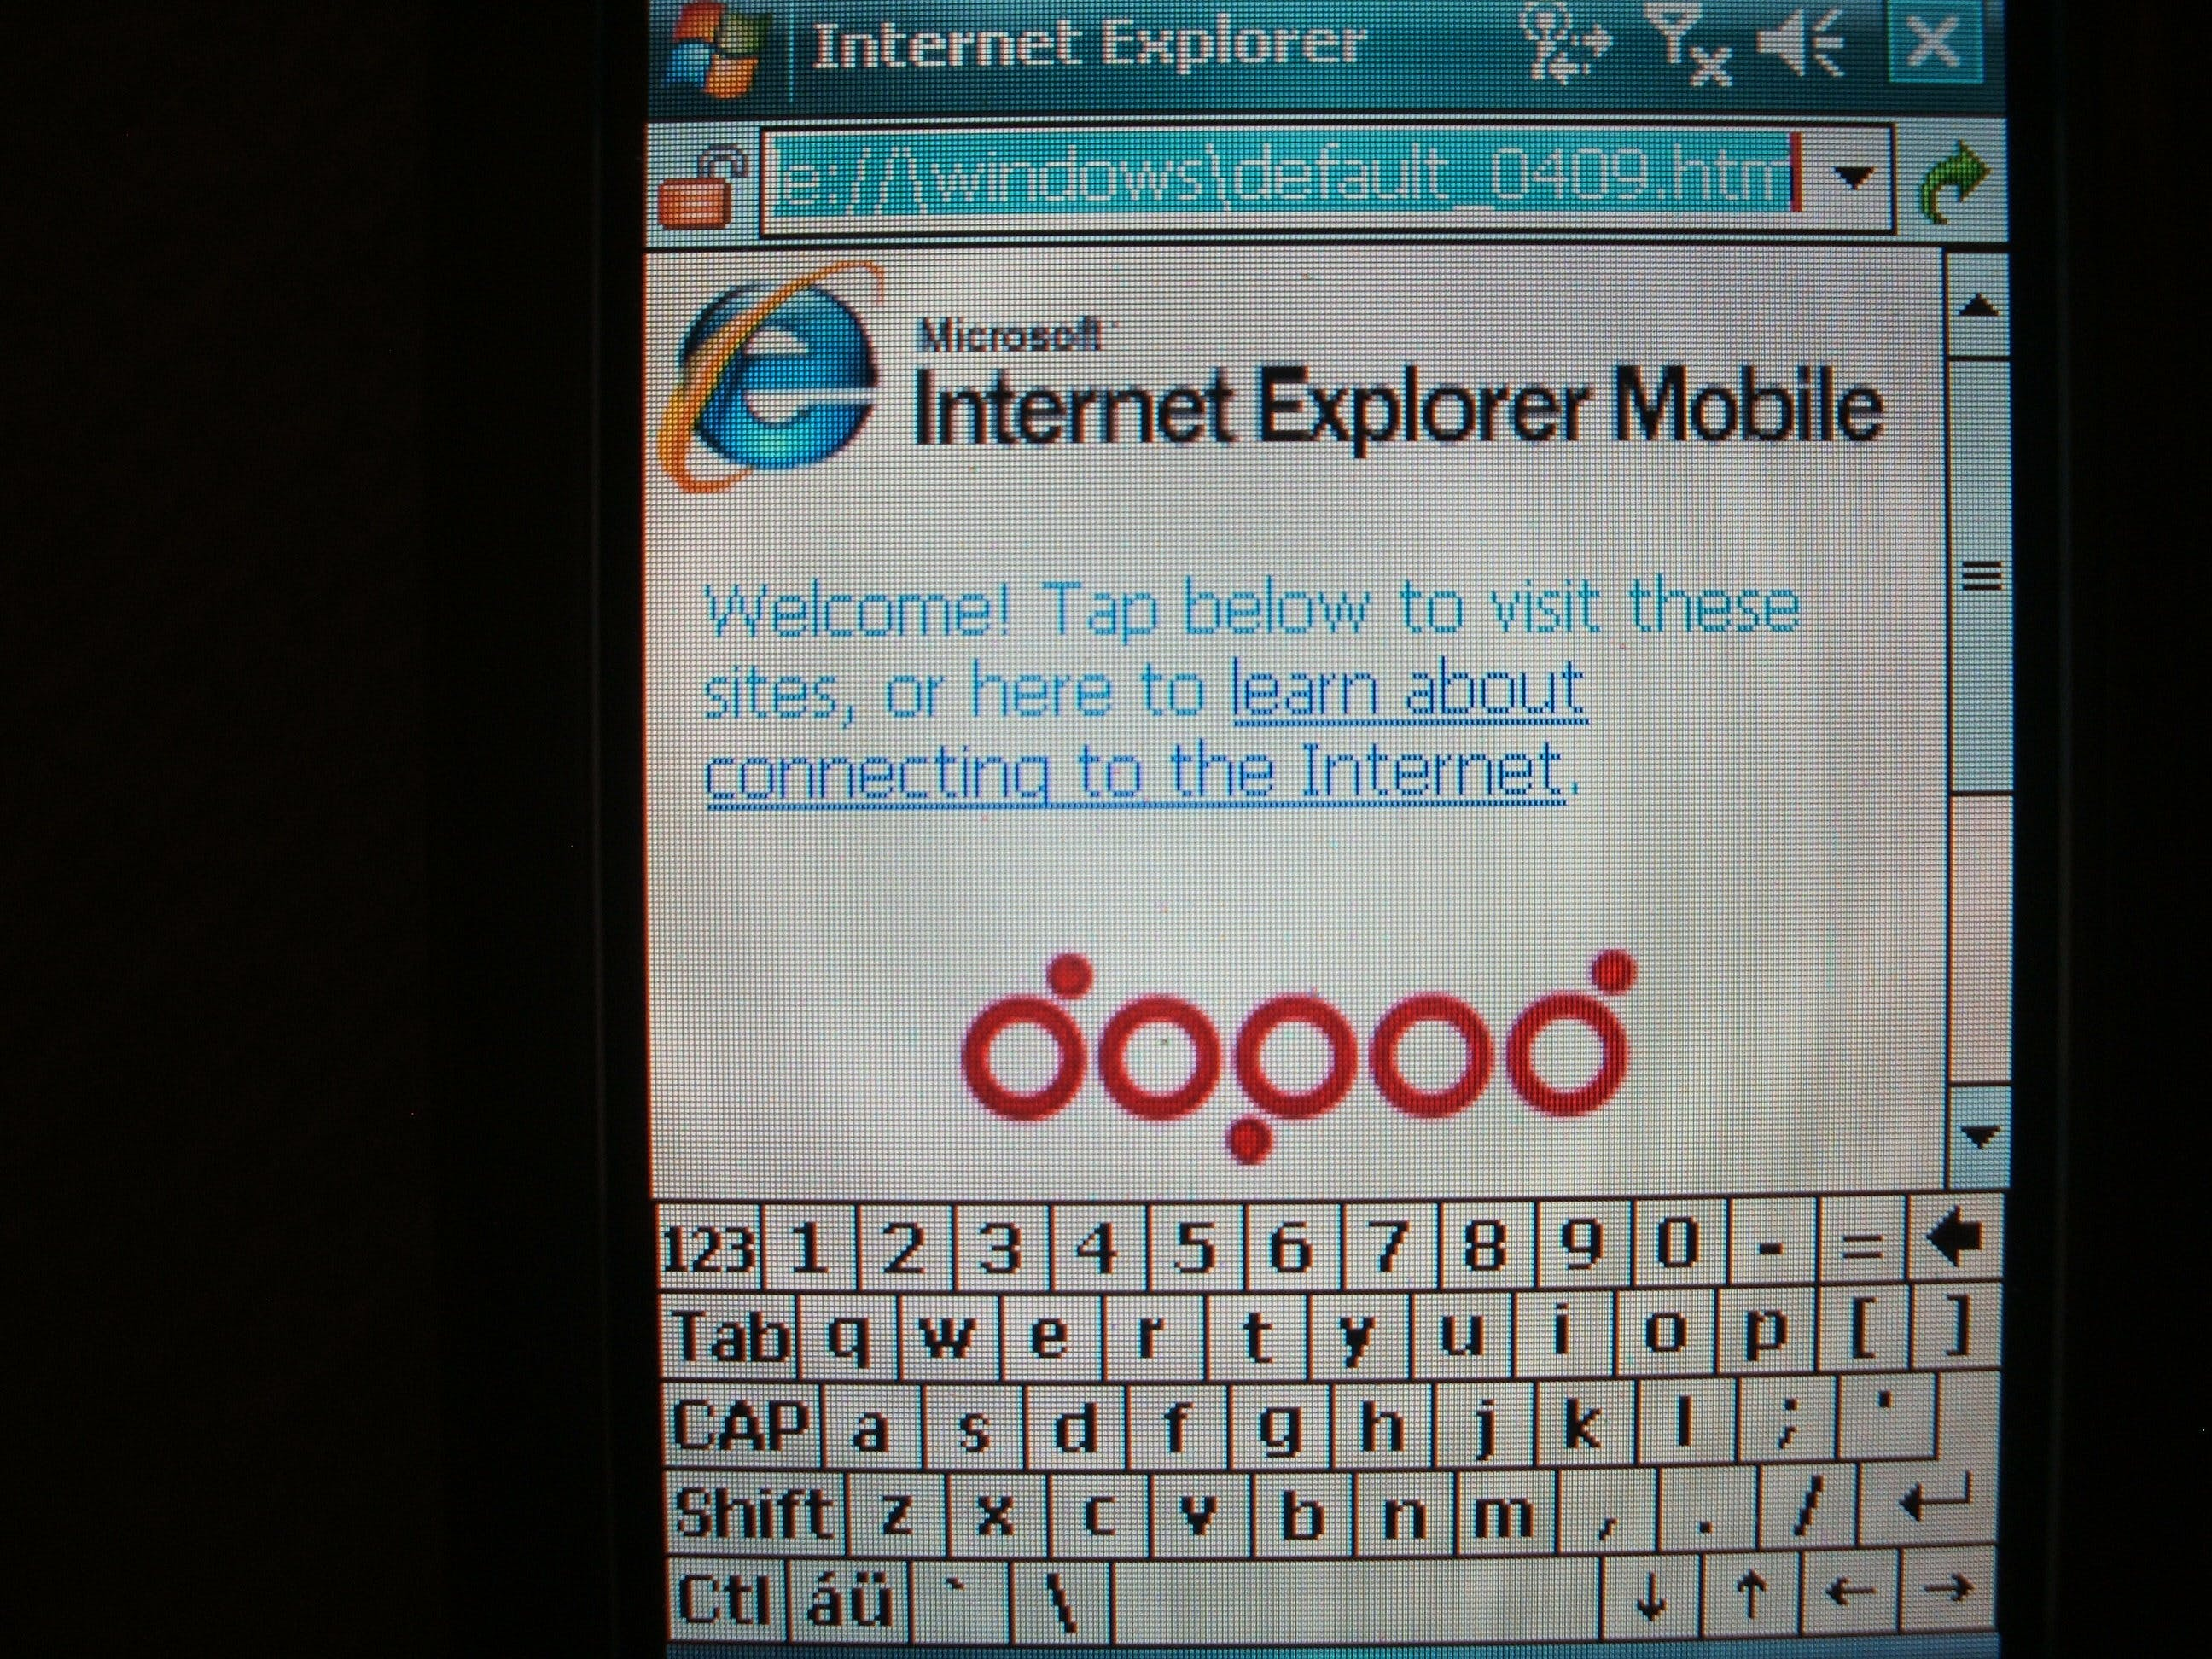 A typical Windows Mobile IE opening screen